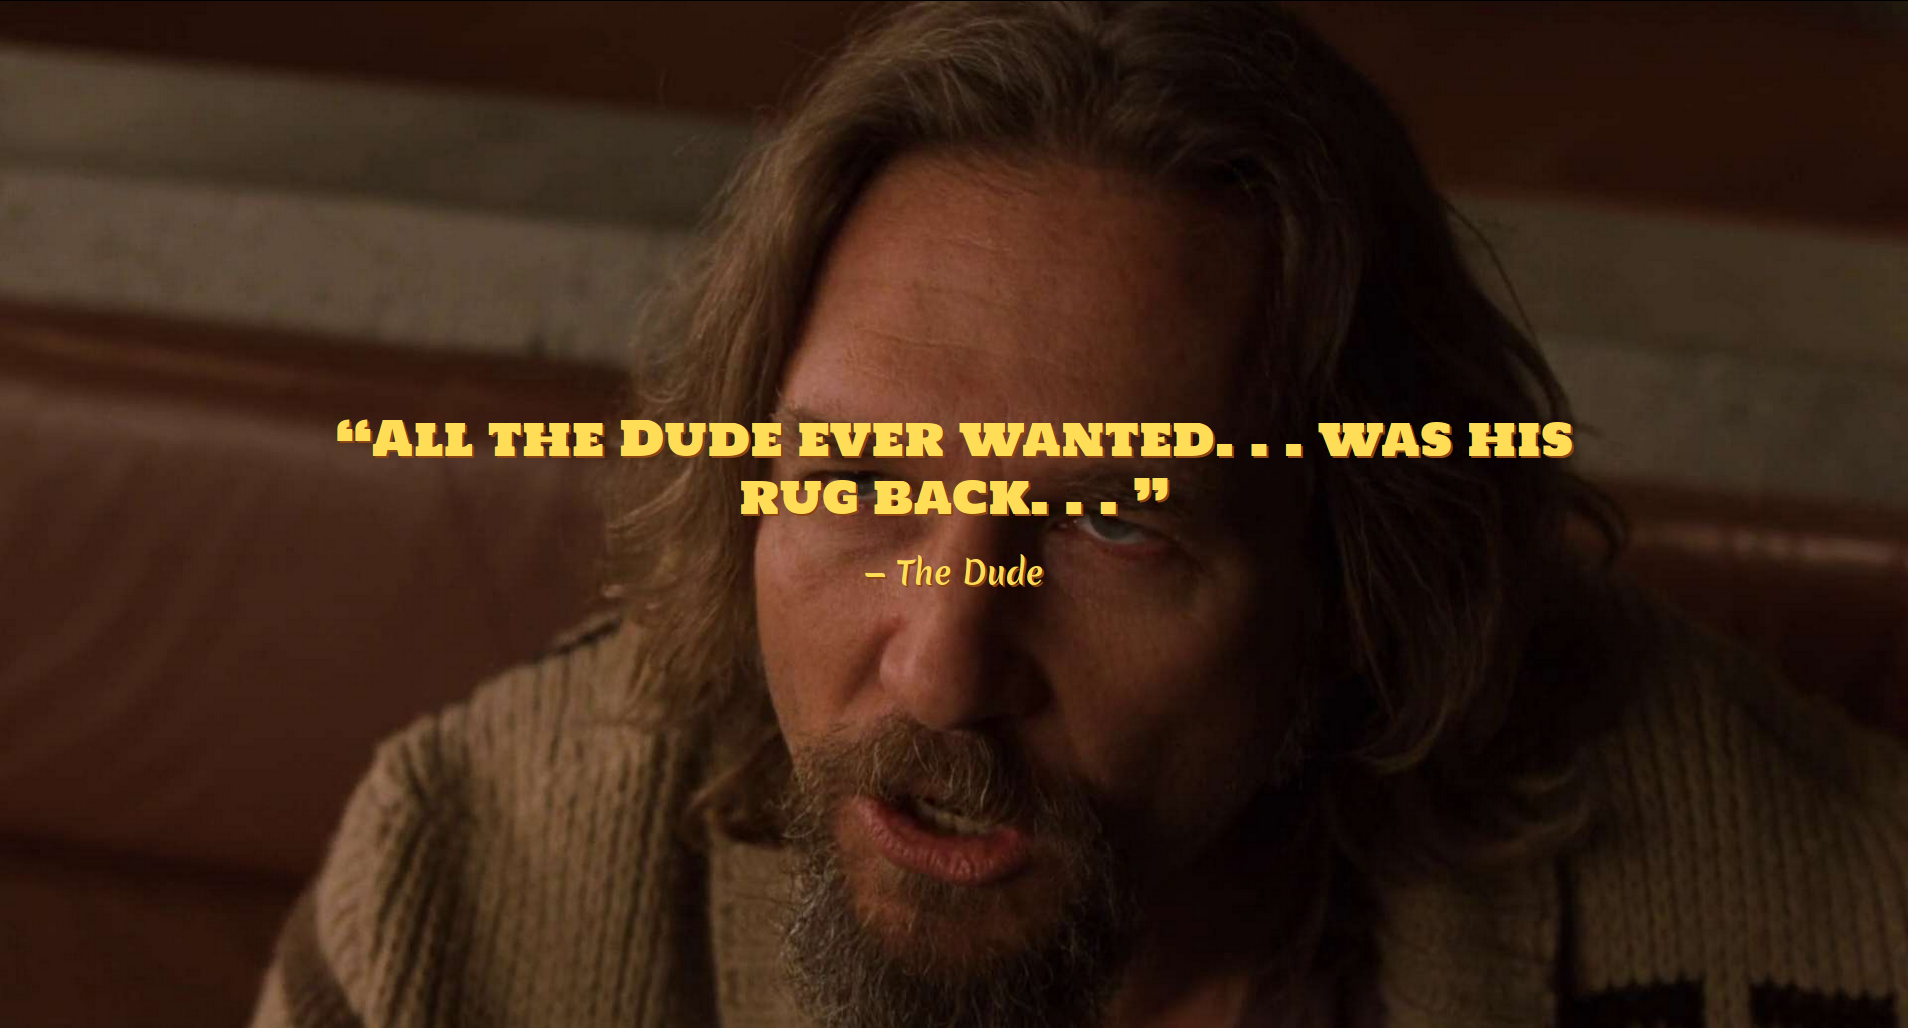 """The Dude: """"All The Dude every wanted… was his rug back."""""""